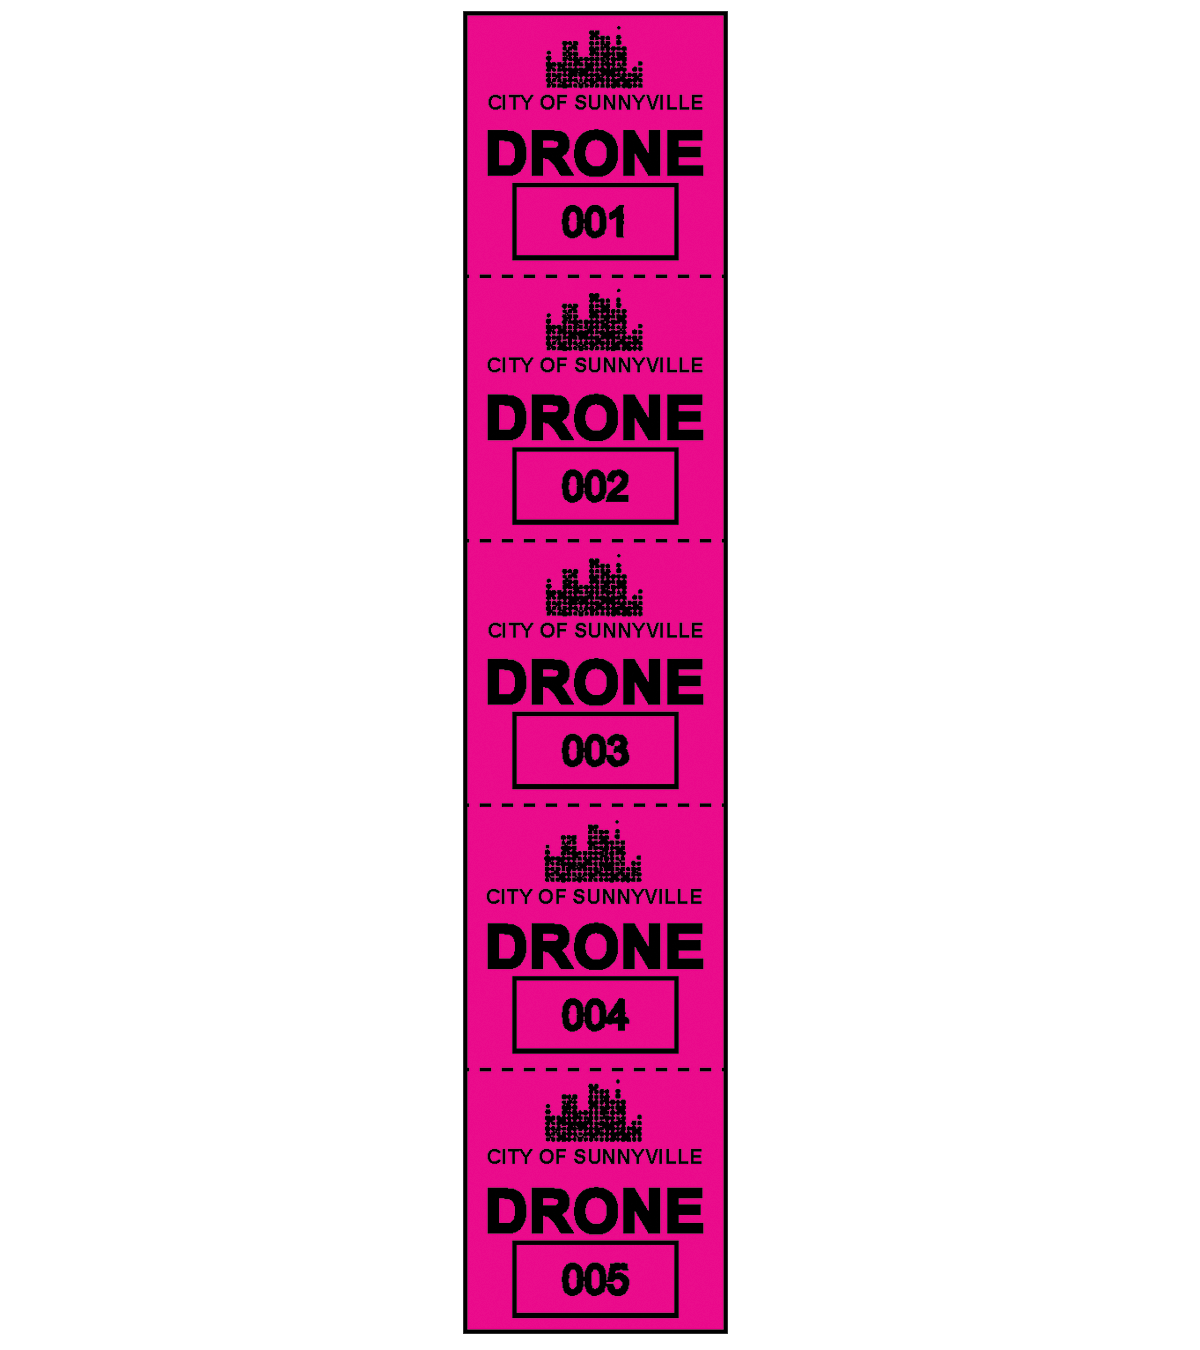 Drone Permit Decals